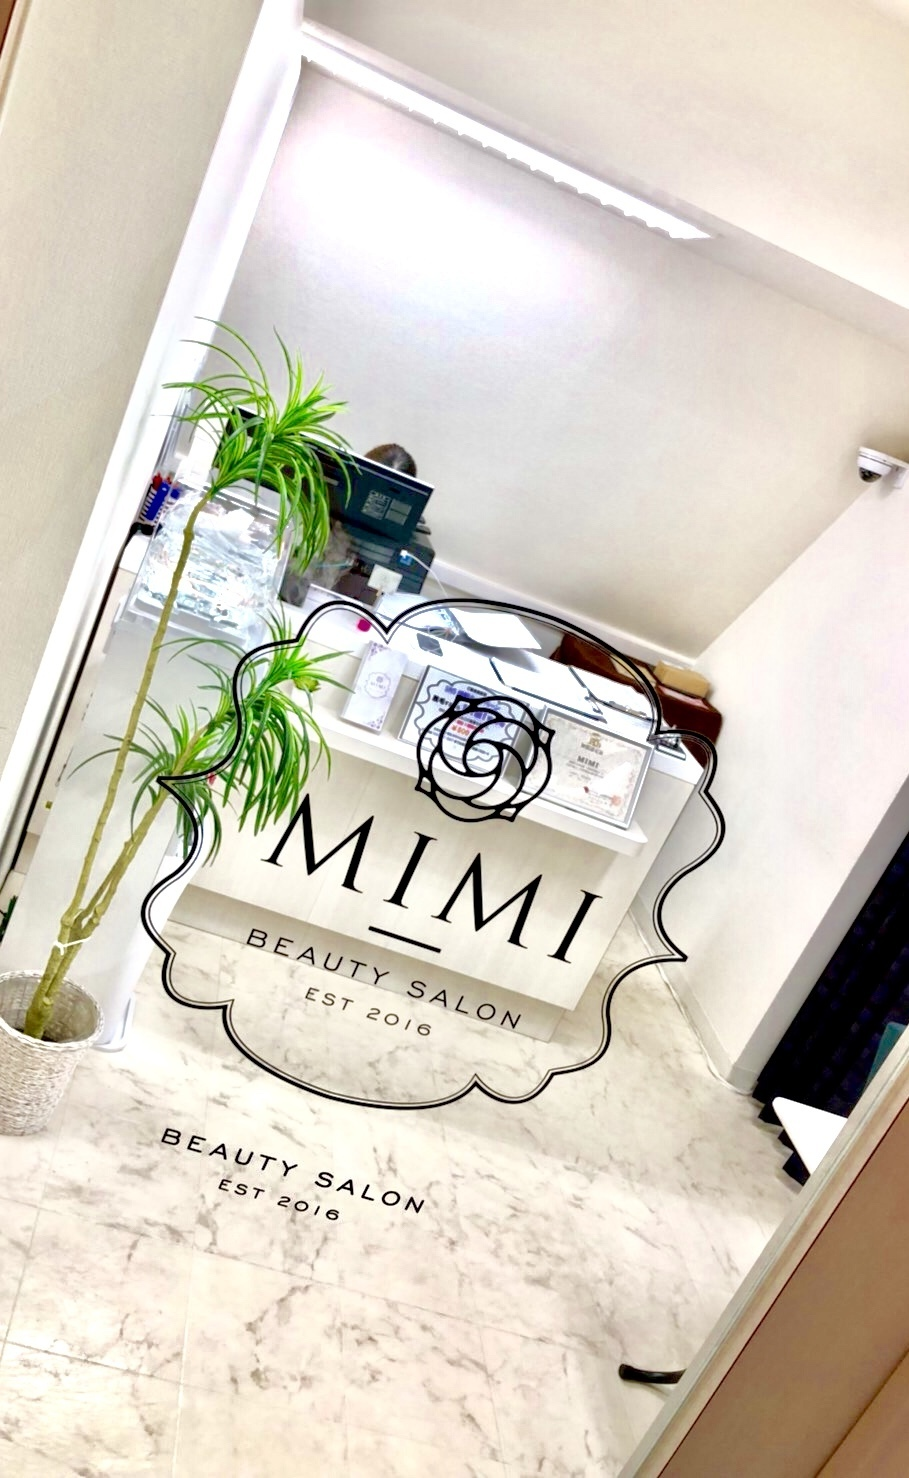 mimi beauty salon 吉祥寺,脱毛